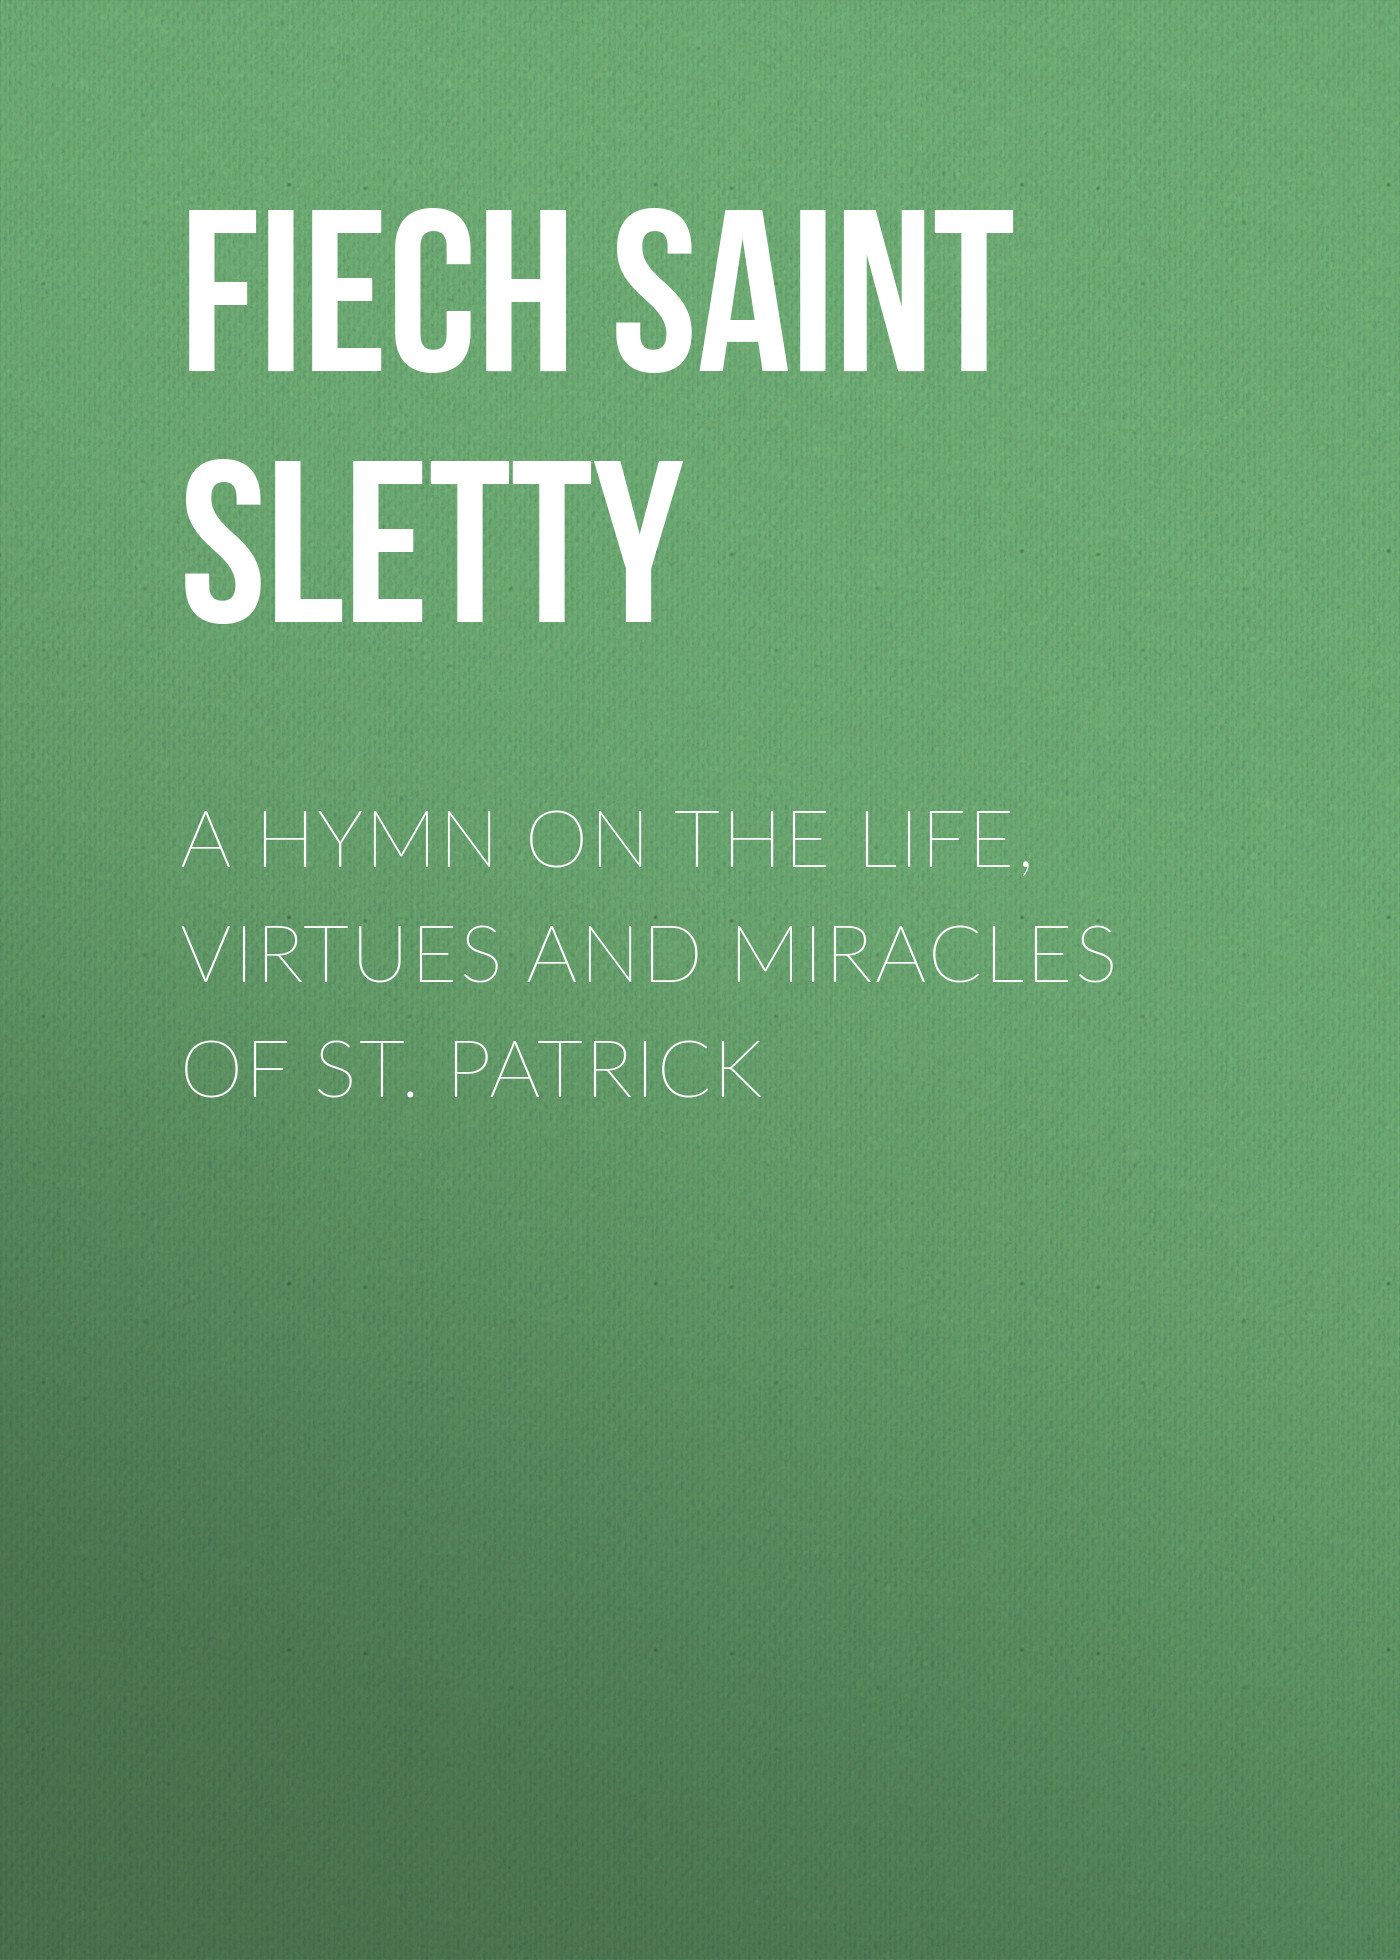 Fiech Saint Bishop of Sletty A Hymn on the Life, Virtues and Miracles of St. Patrick fiech saint bishop of sletty a hymn on the life virtues and miracles of st patrick